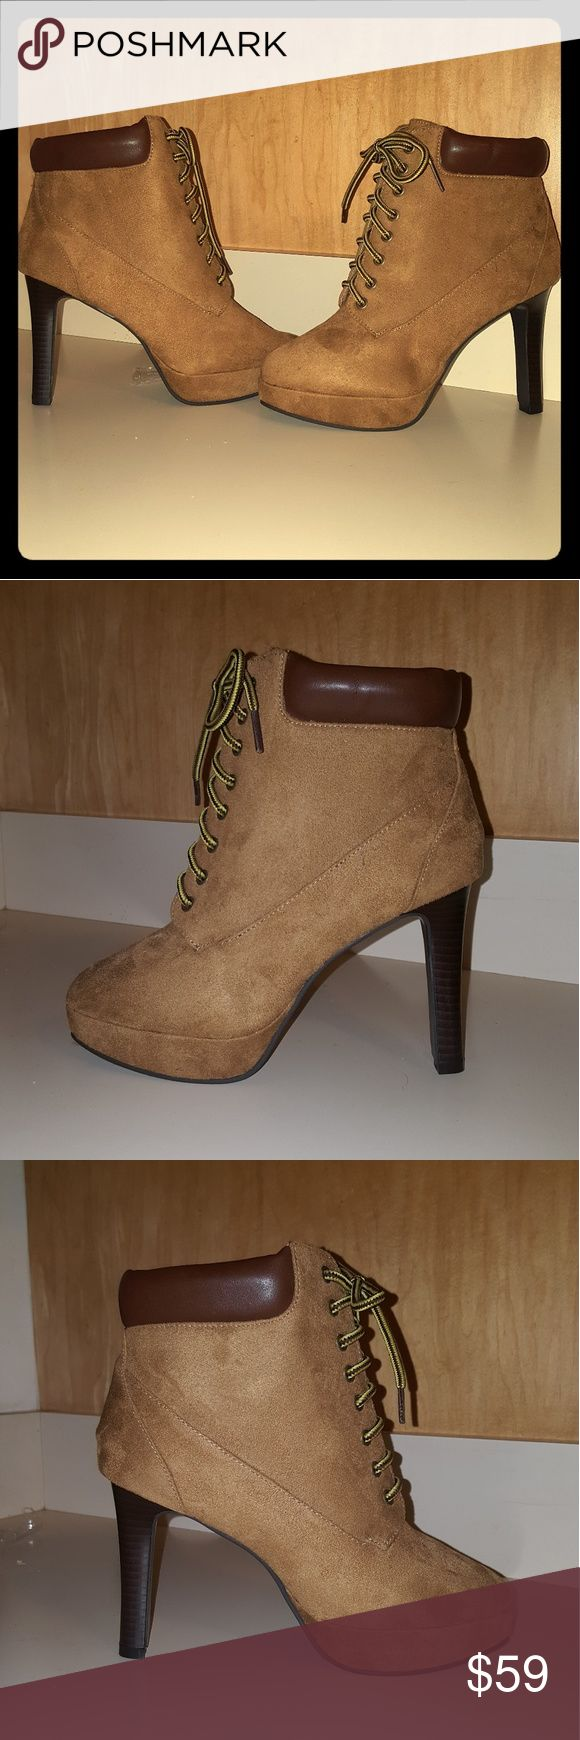 """""""Timberland"""" Style Heels Brand New/Never Worn In Original Box  Women's """"Timberland"""" Style Heels  Brand: Boston Design Studio Size: 6 Boston Design Studio Shoes Heeled Boots"""